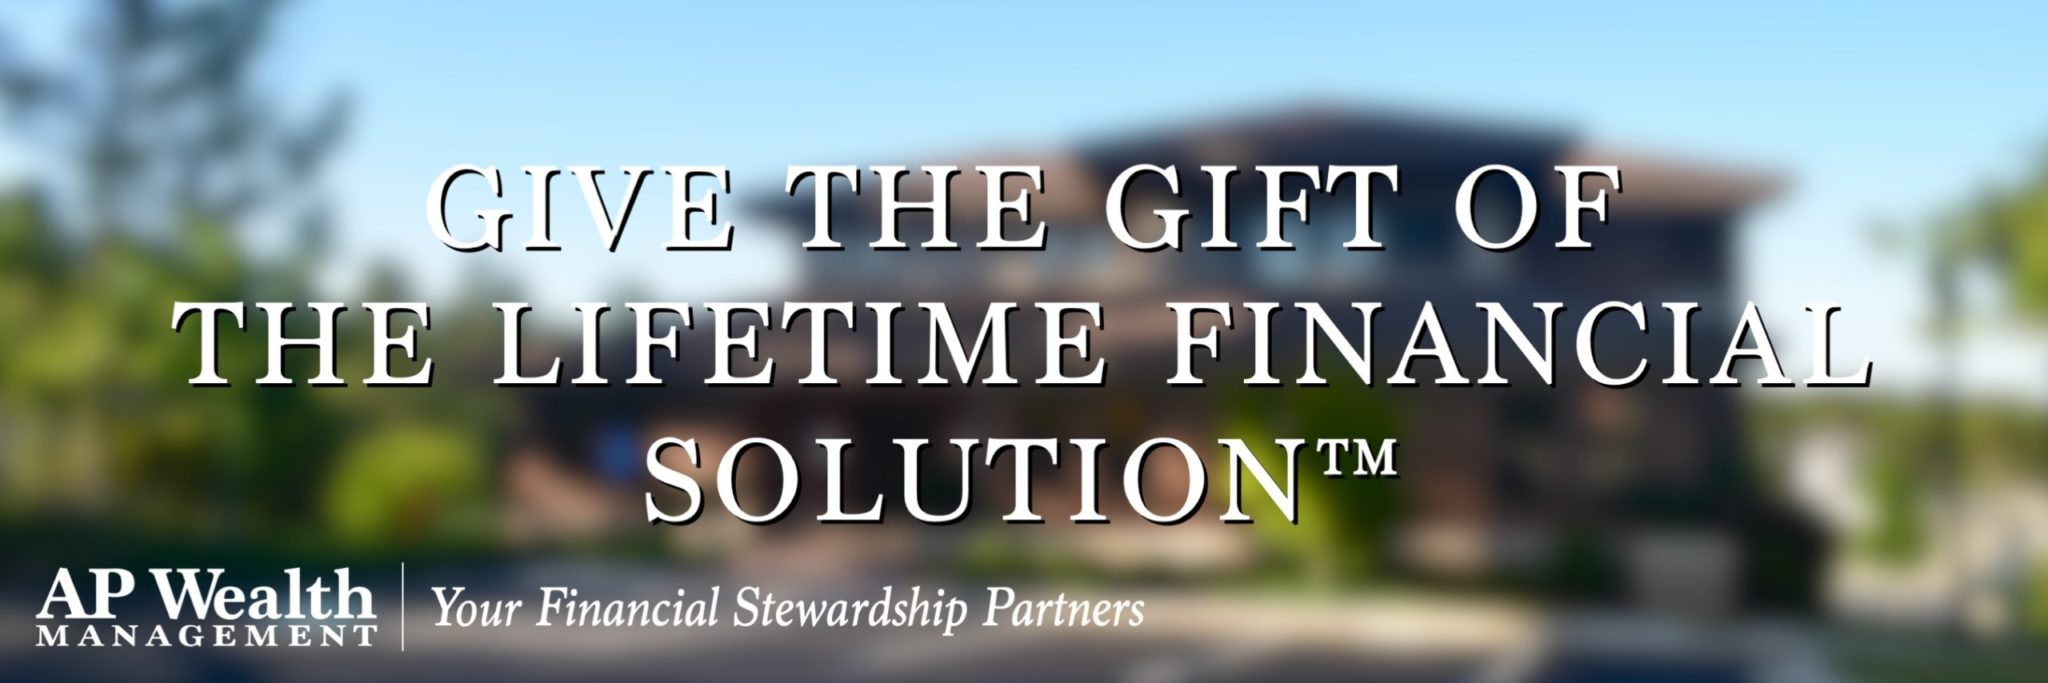 Give The Gift Of The Lifetime Financial Solution™ This Holiday Season